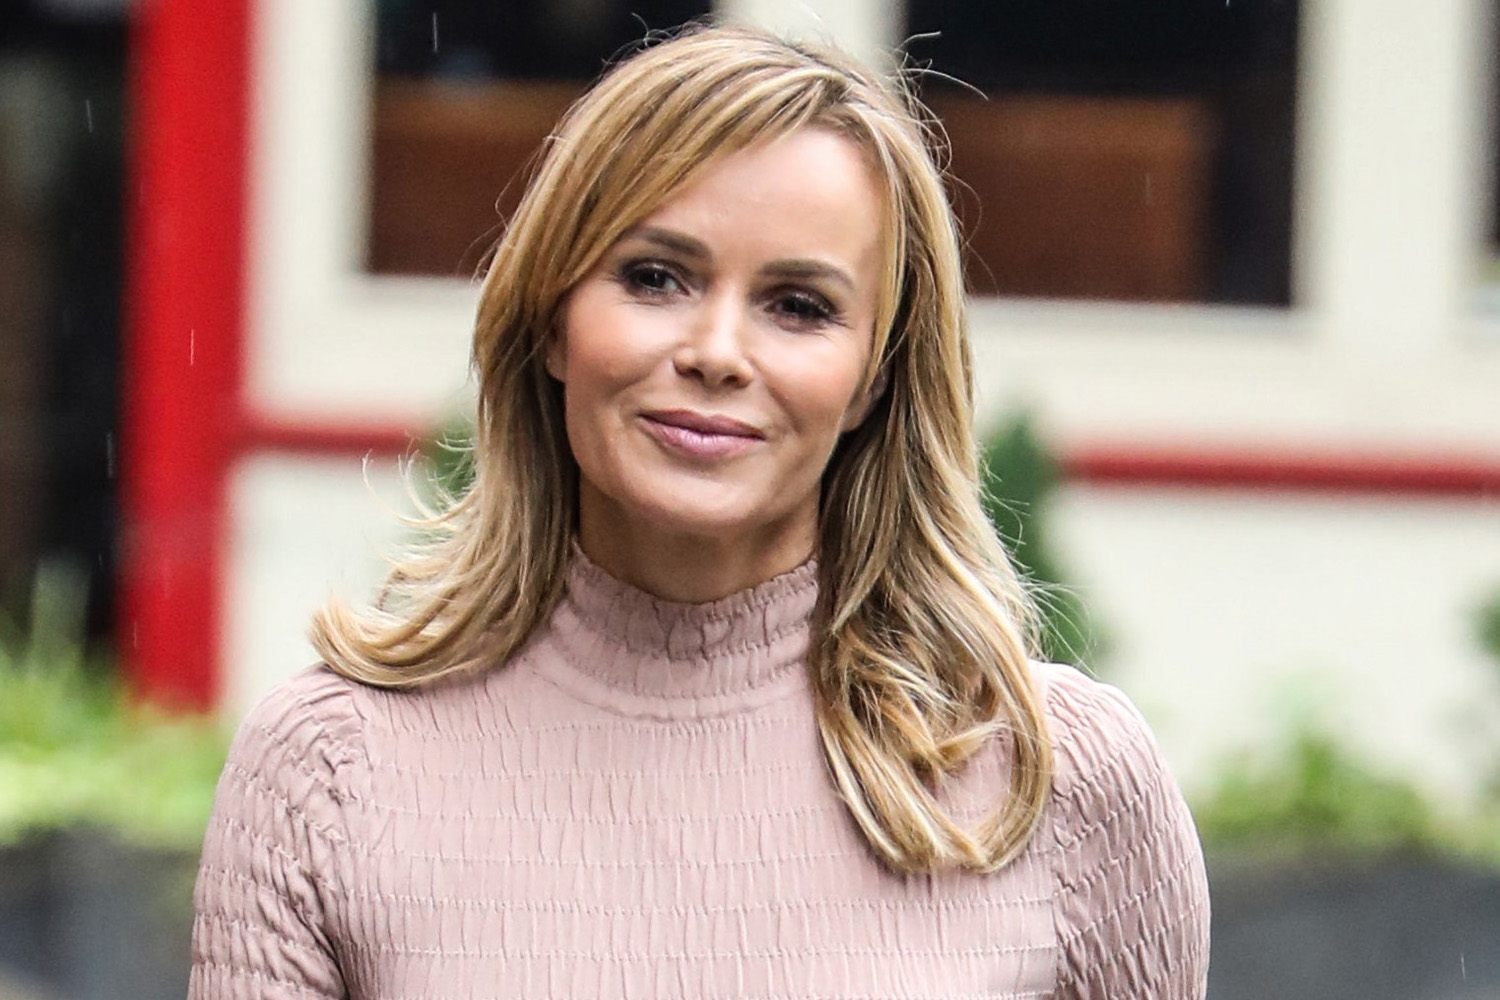 Amanda Holden leaves little to the imagination in fitted dress